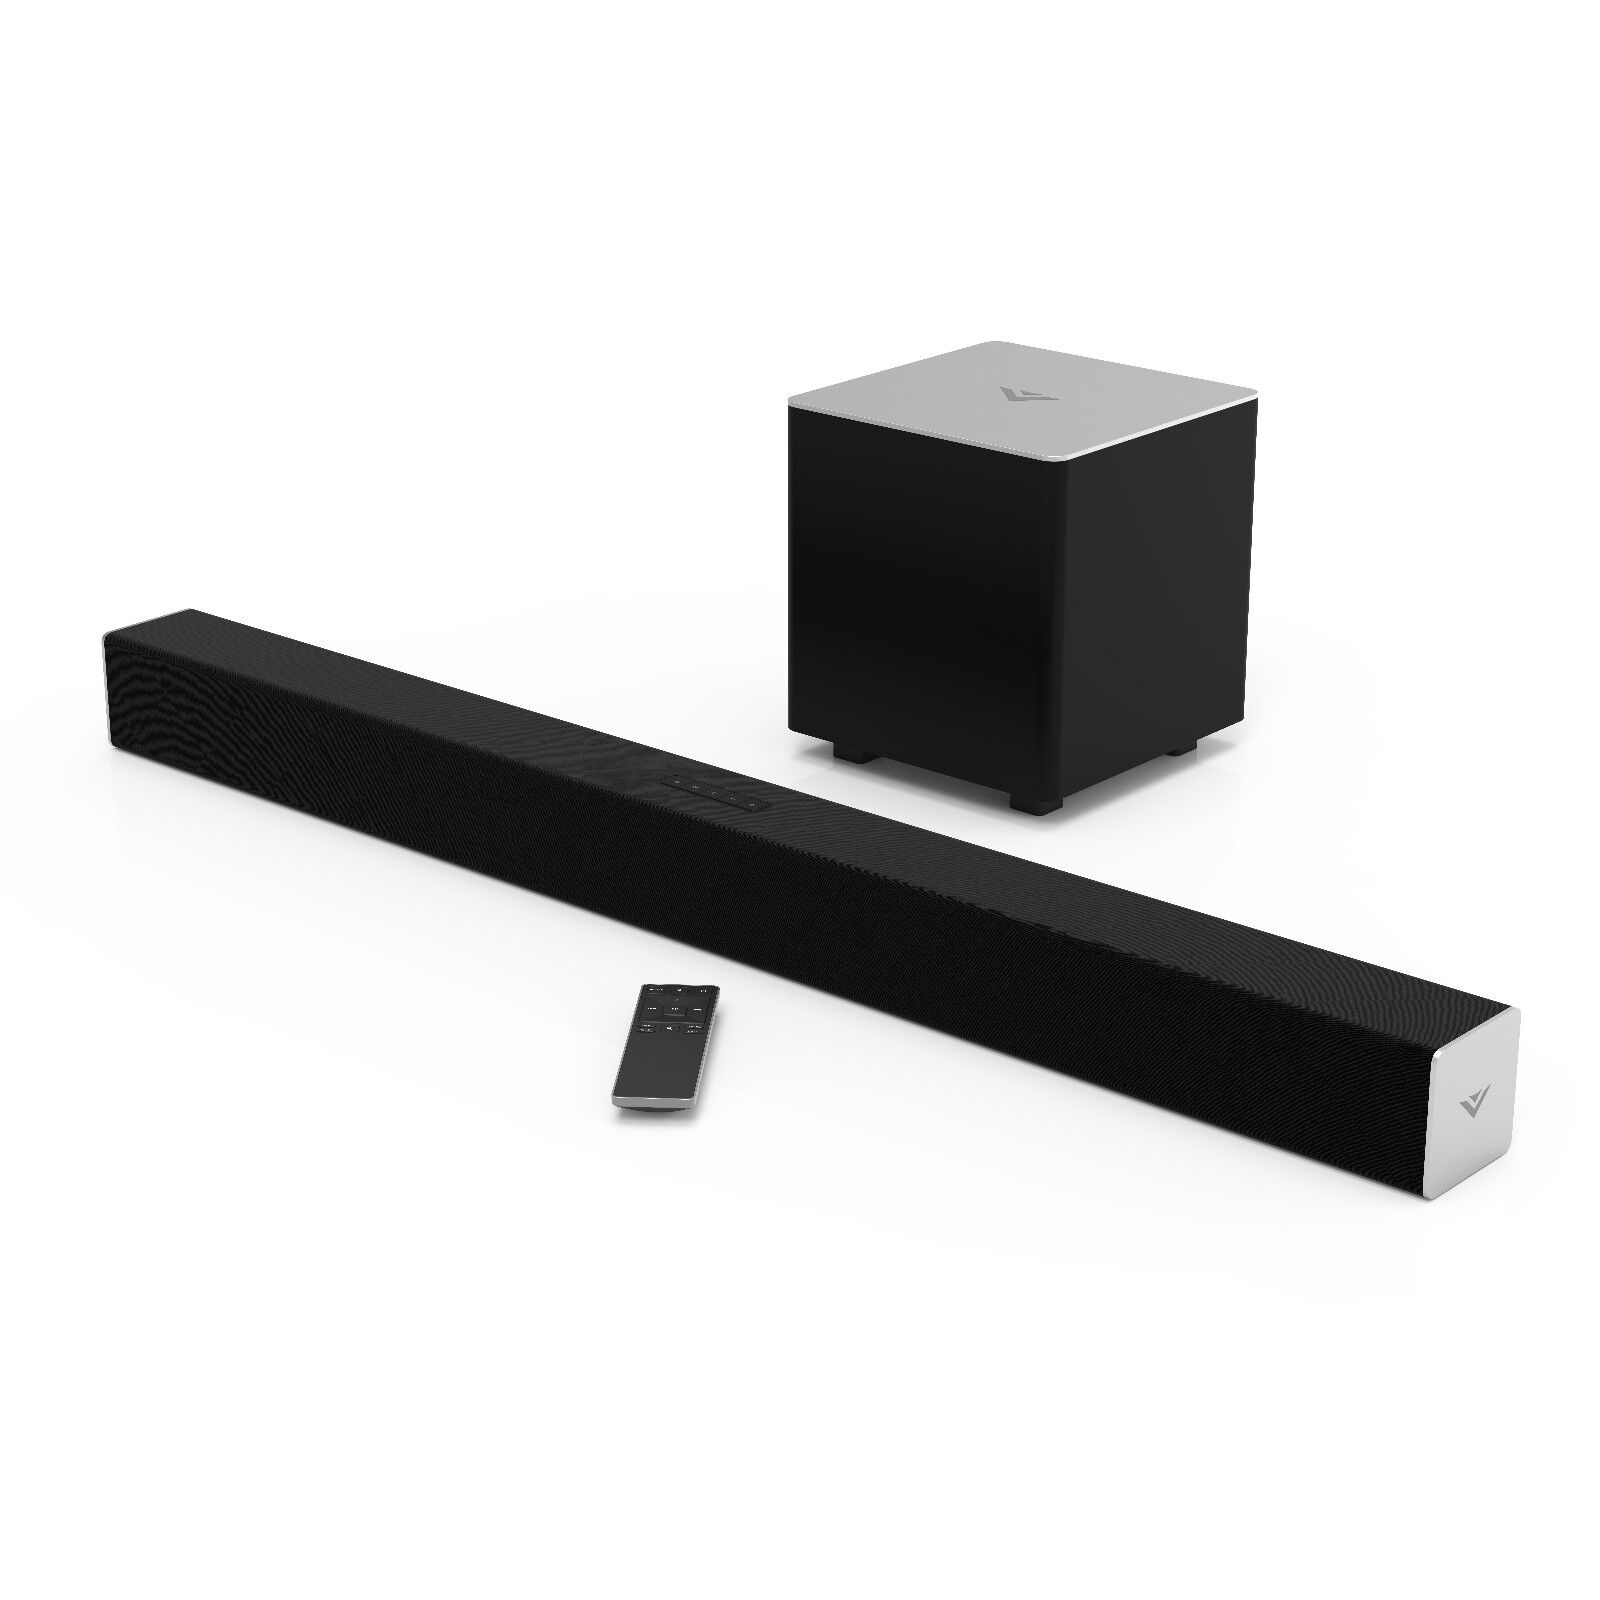 VIZIO SB3821-C6 38-Inch 2.1 Channel Sound Bar with Wireless SubWoofer Was: $159.99 Now: $109.99 and Free Shipping.